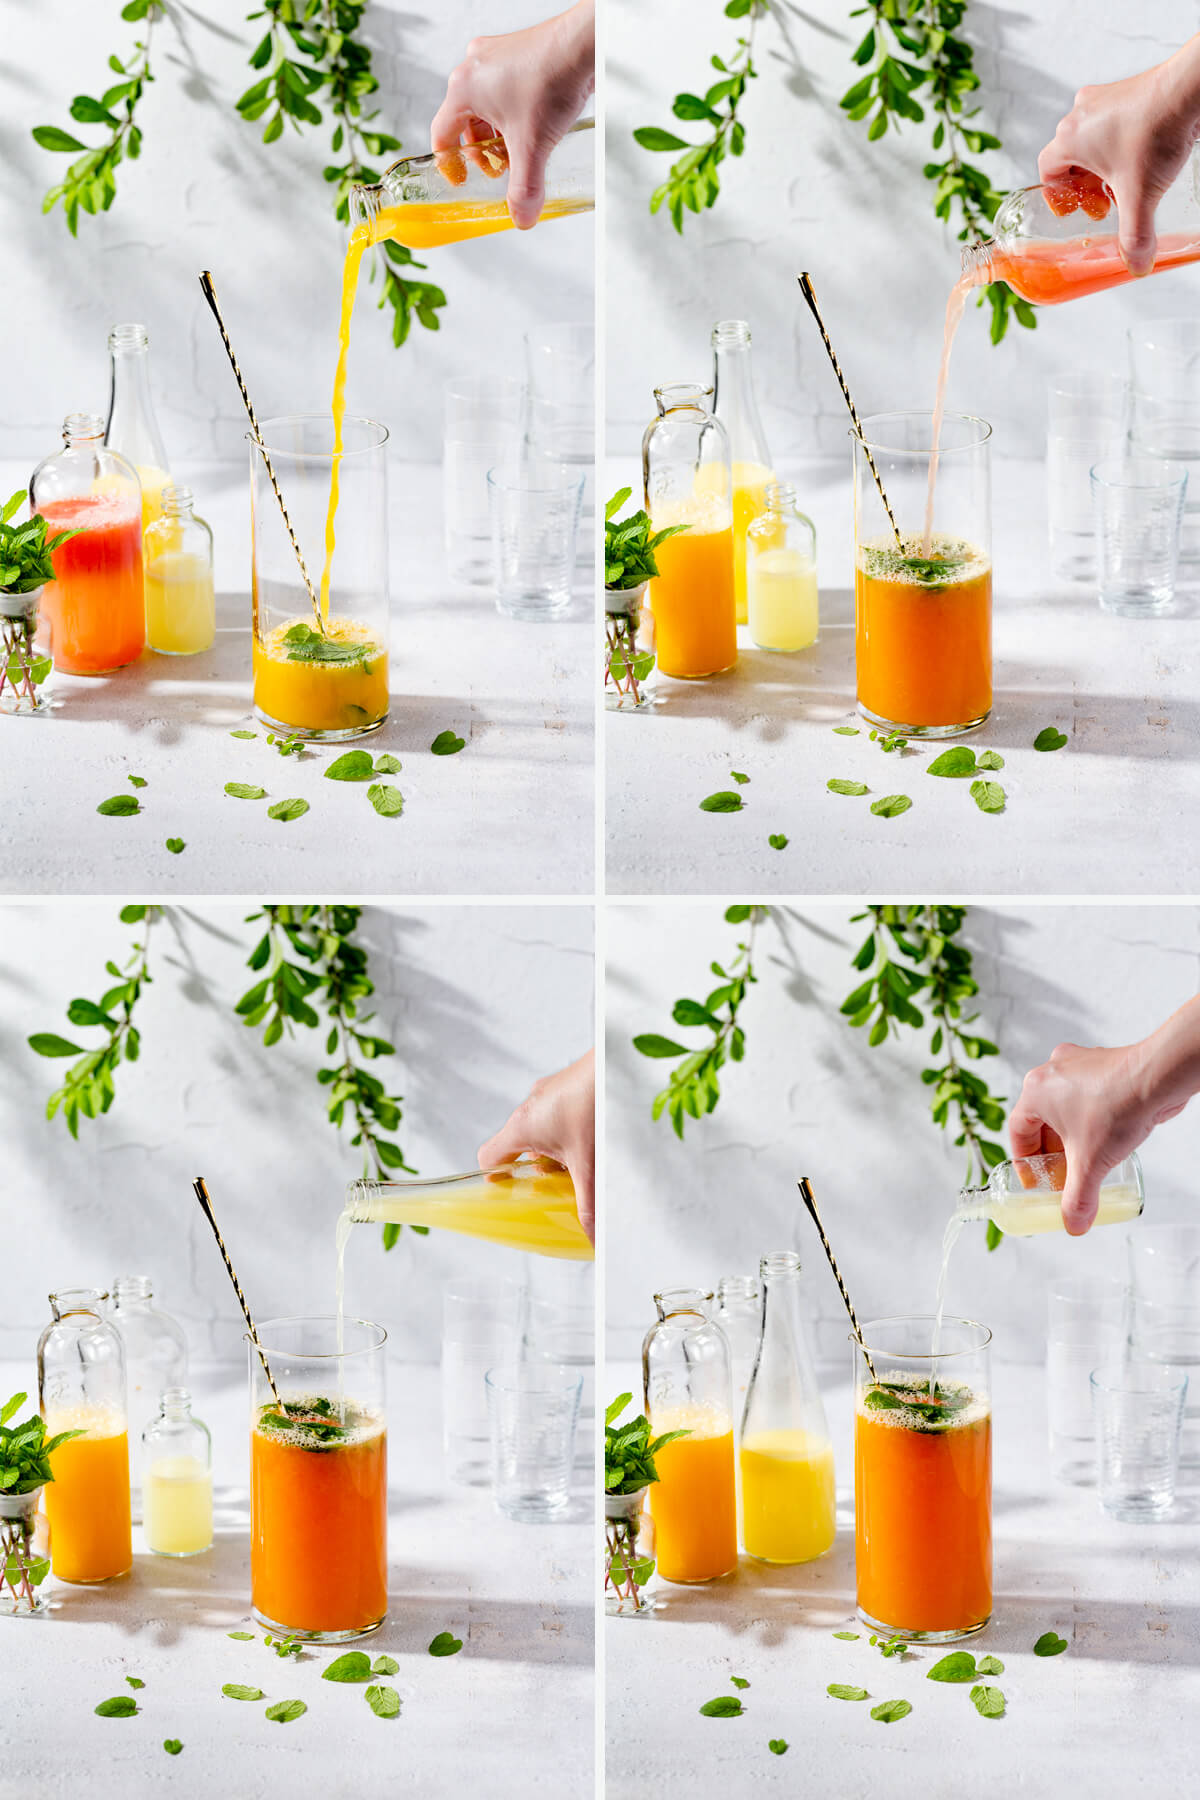 A collage of showing how to make mintade with fresh juices.